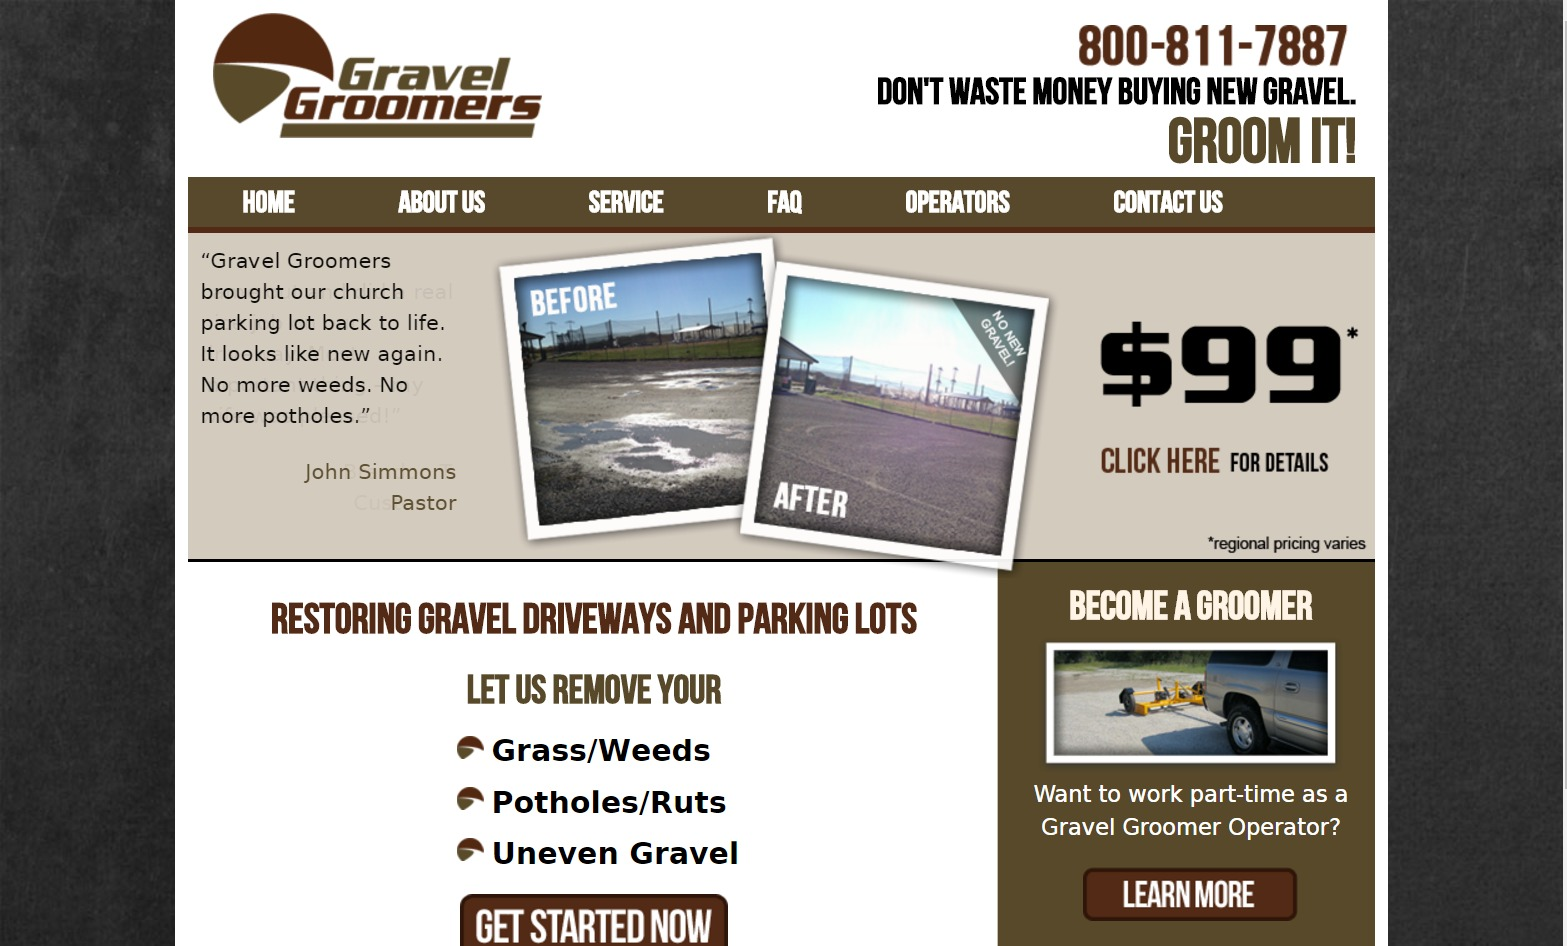 Gravel Groomers (East Peoria, IL) Web Design Project